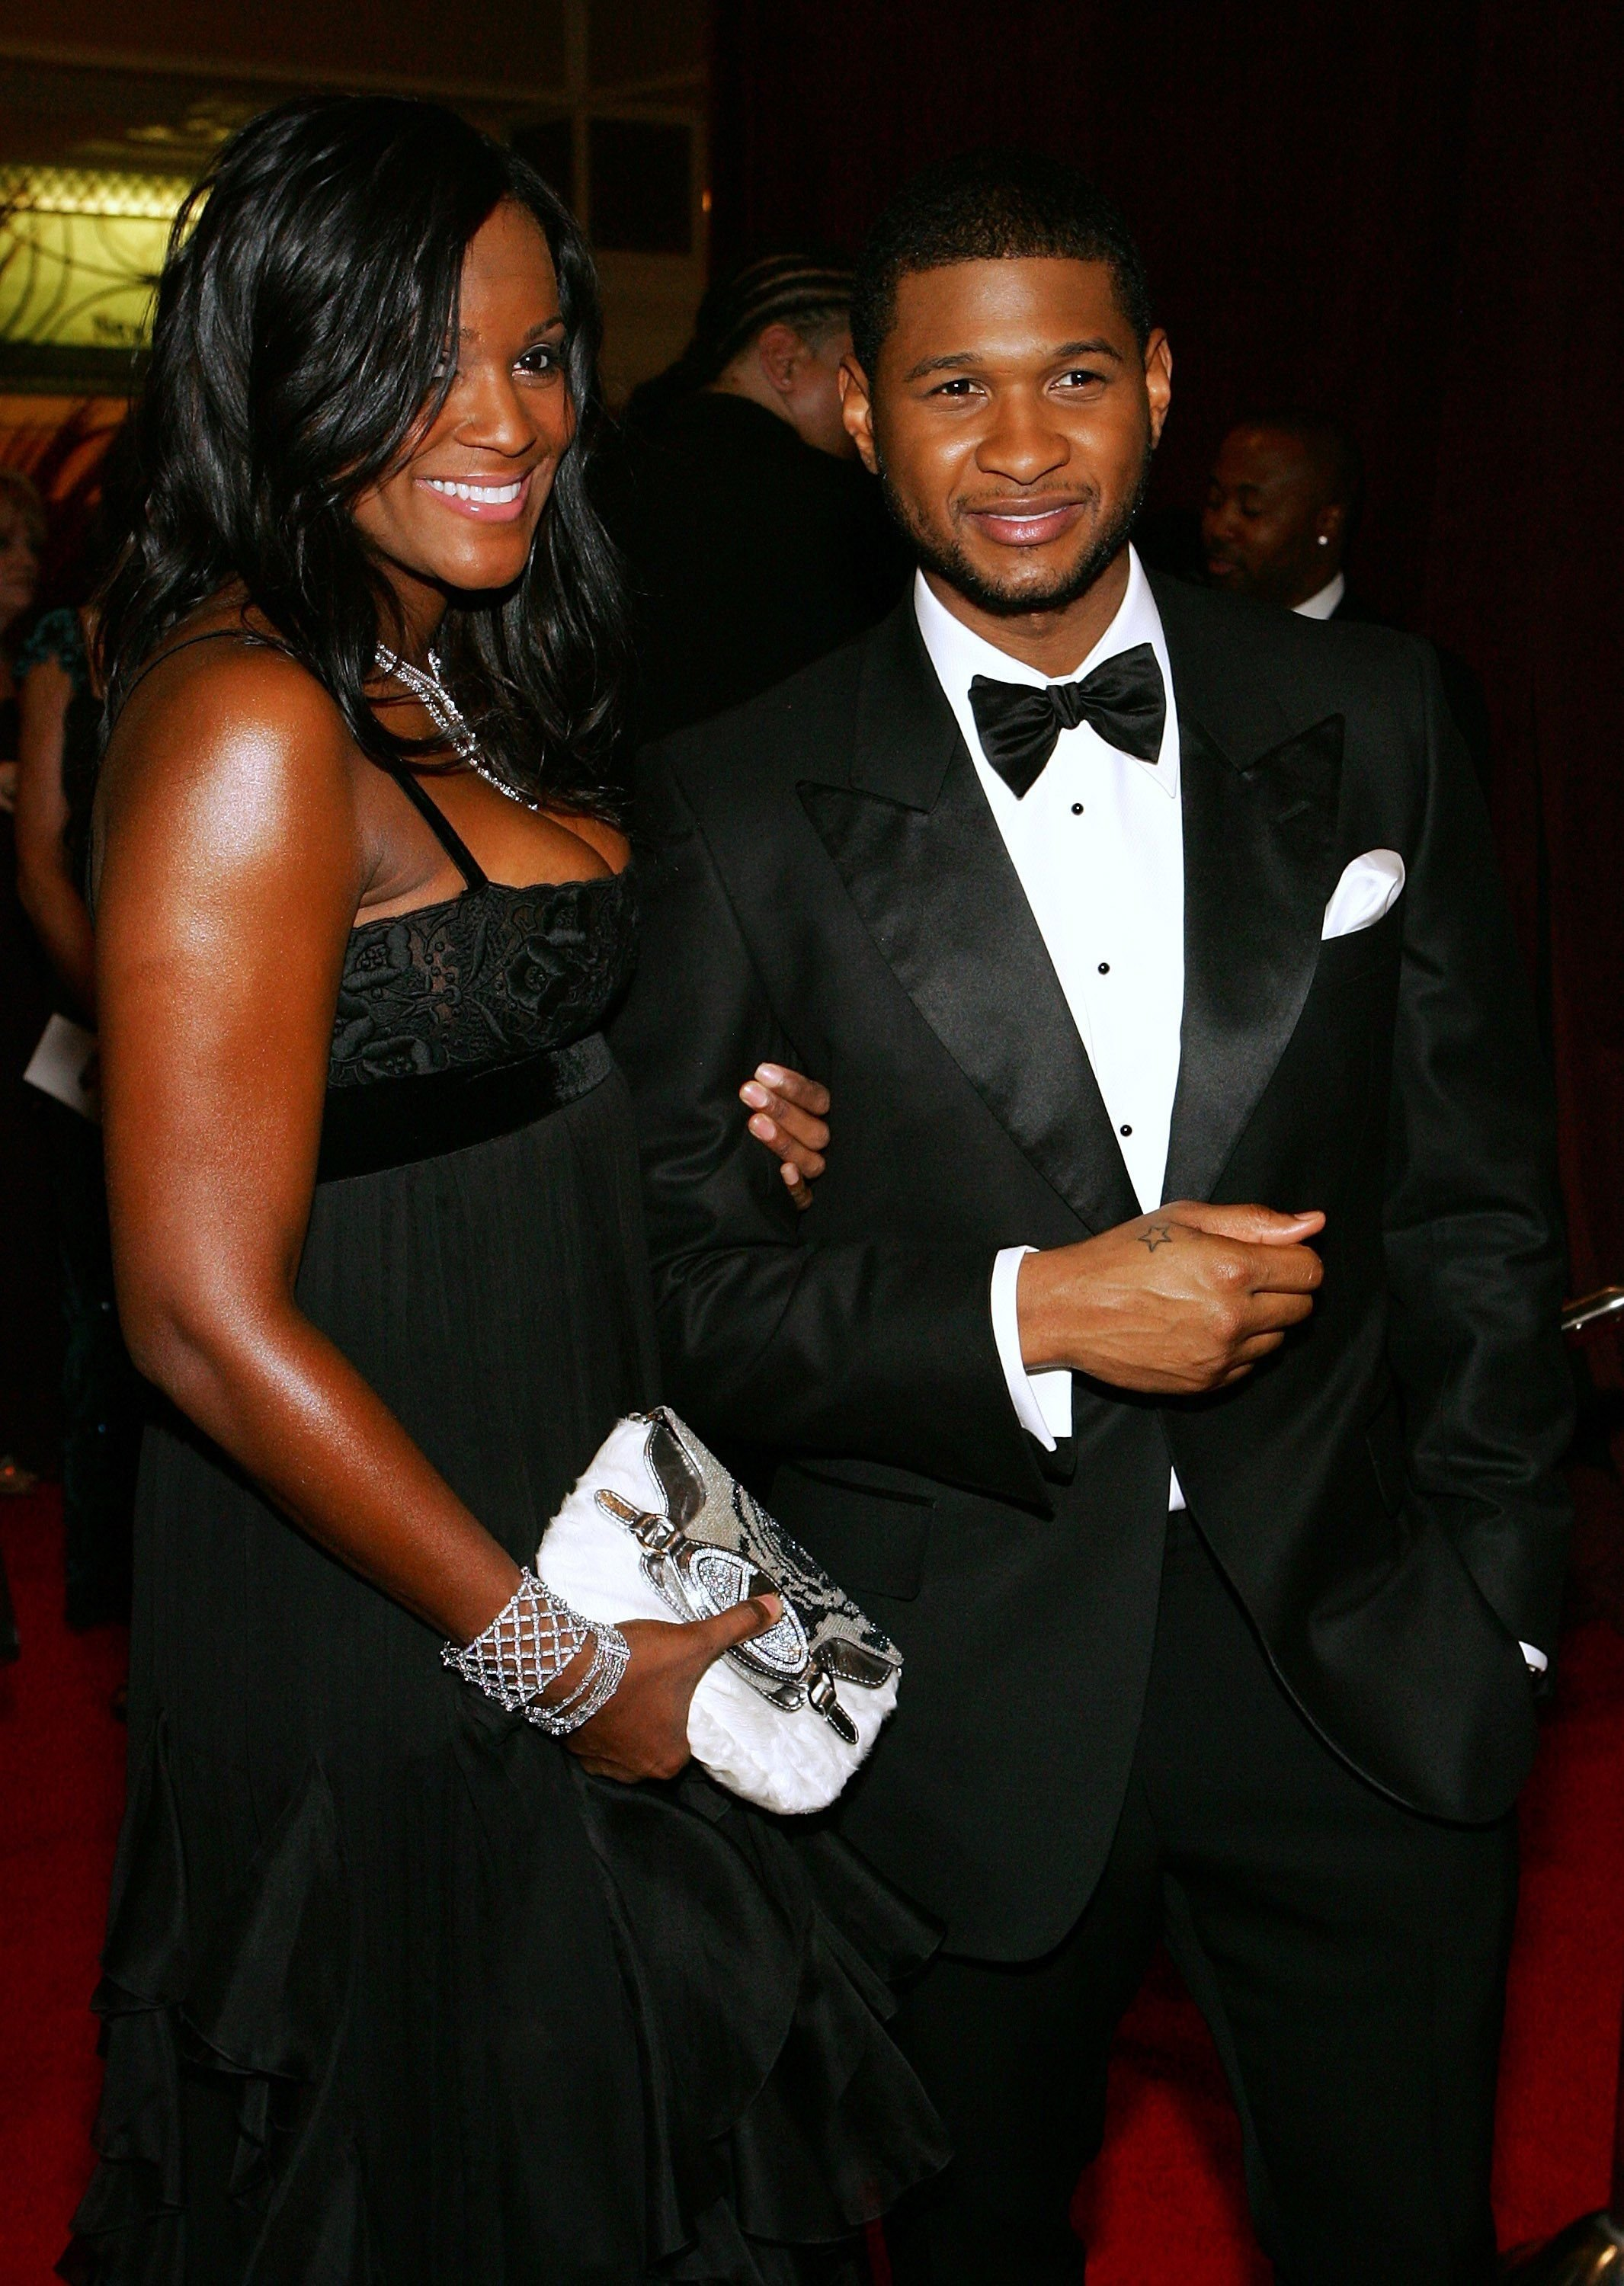 Usher Raymond and Tameka Foster attend the 15th annual Trumpet Awards at the Bellagio January 22, 2007.   Photo: Getty Images